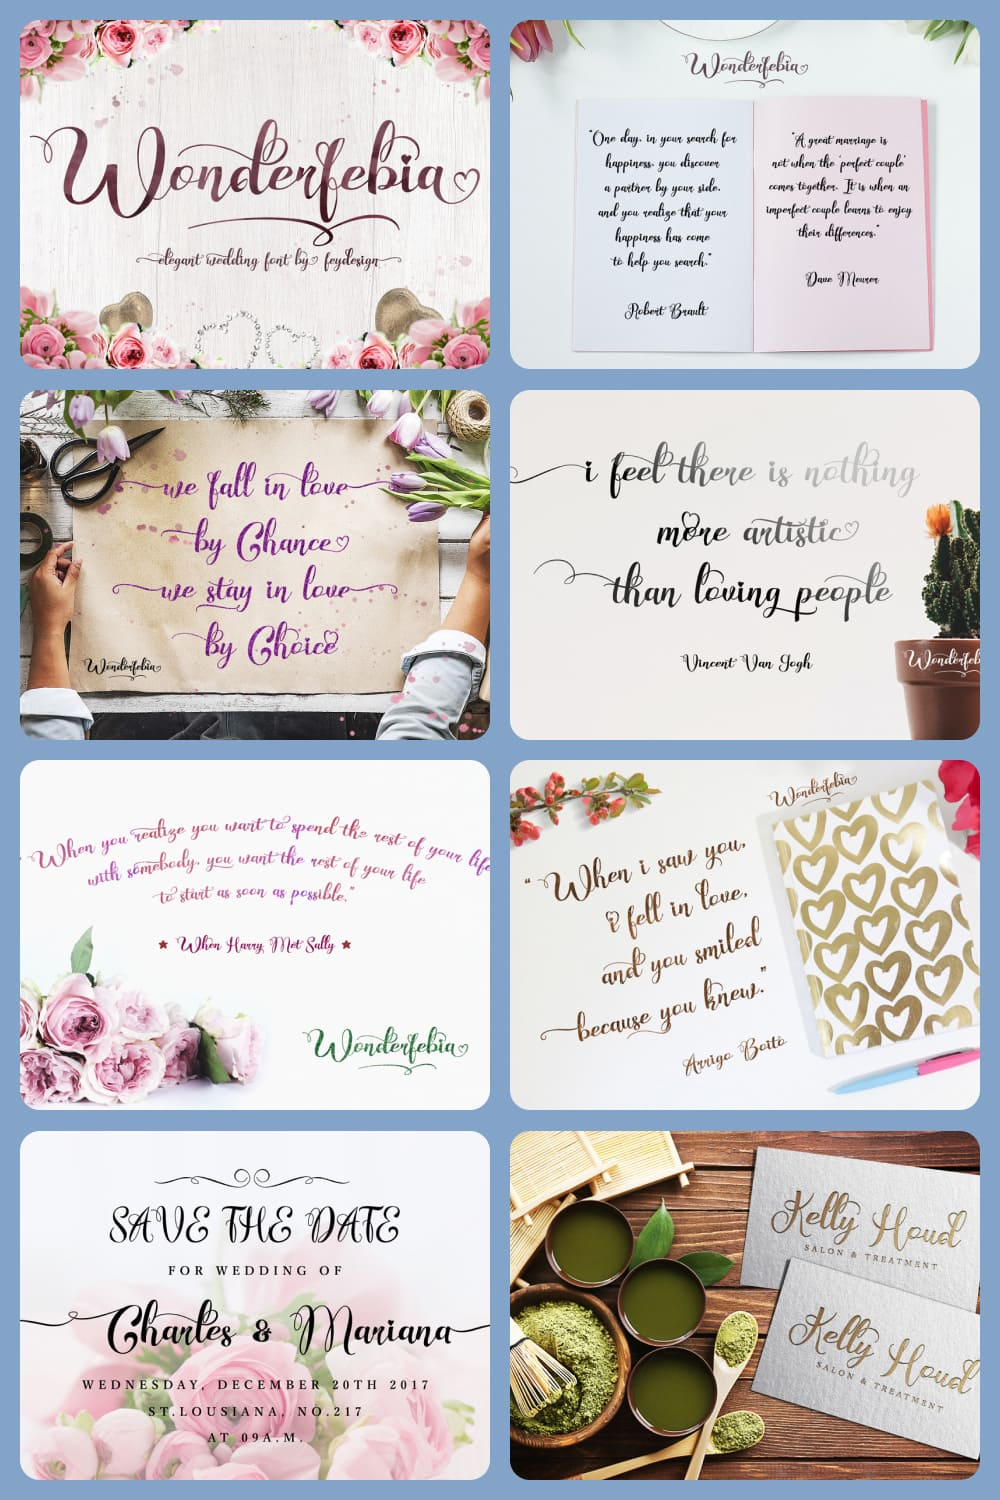 Wonderfebia is Script Wedding Font with modern calligraphy style so much opentype feature include of the font.